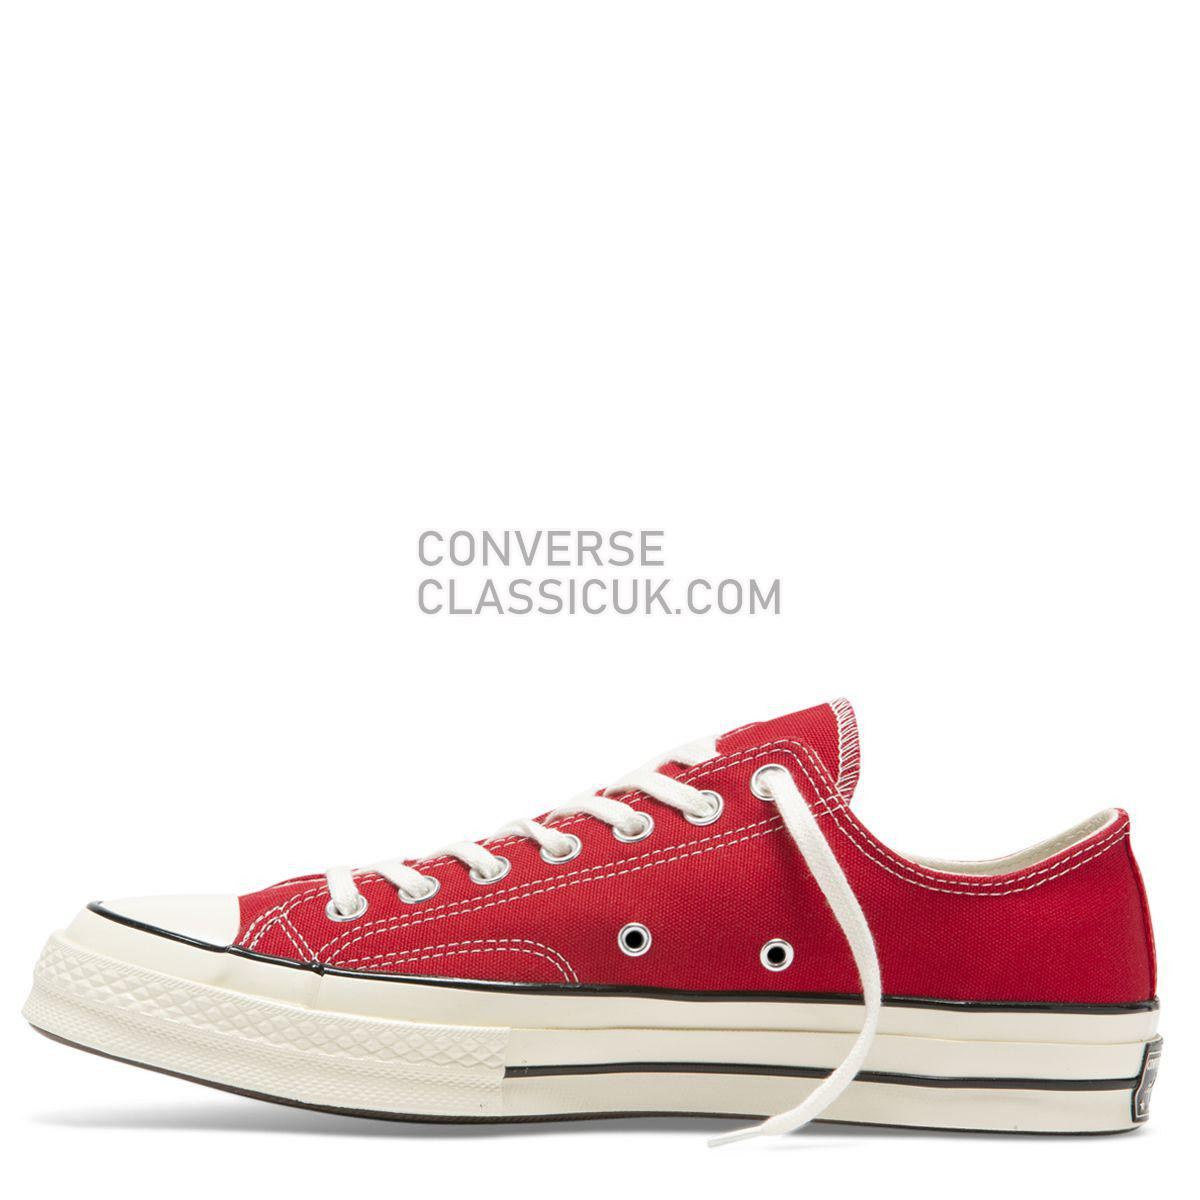 Converse Chuck Taylor All Star 70 Always On Low Top Enamel Red Mens Womens Unisex 164949 Enamel Red/Egret/Black Shoes